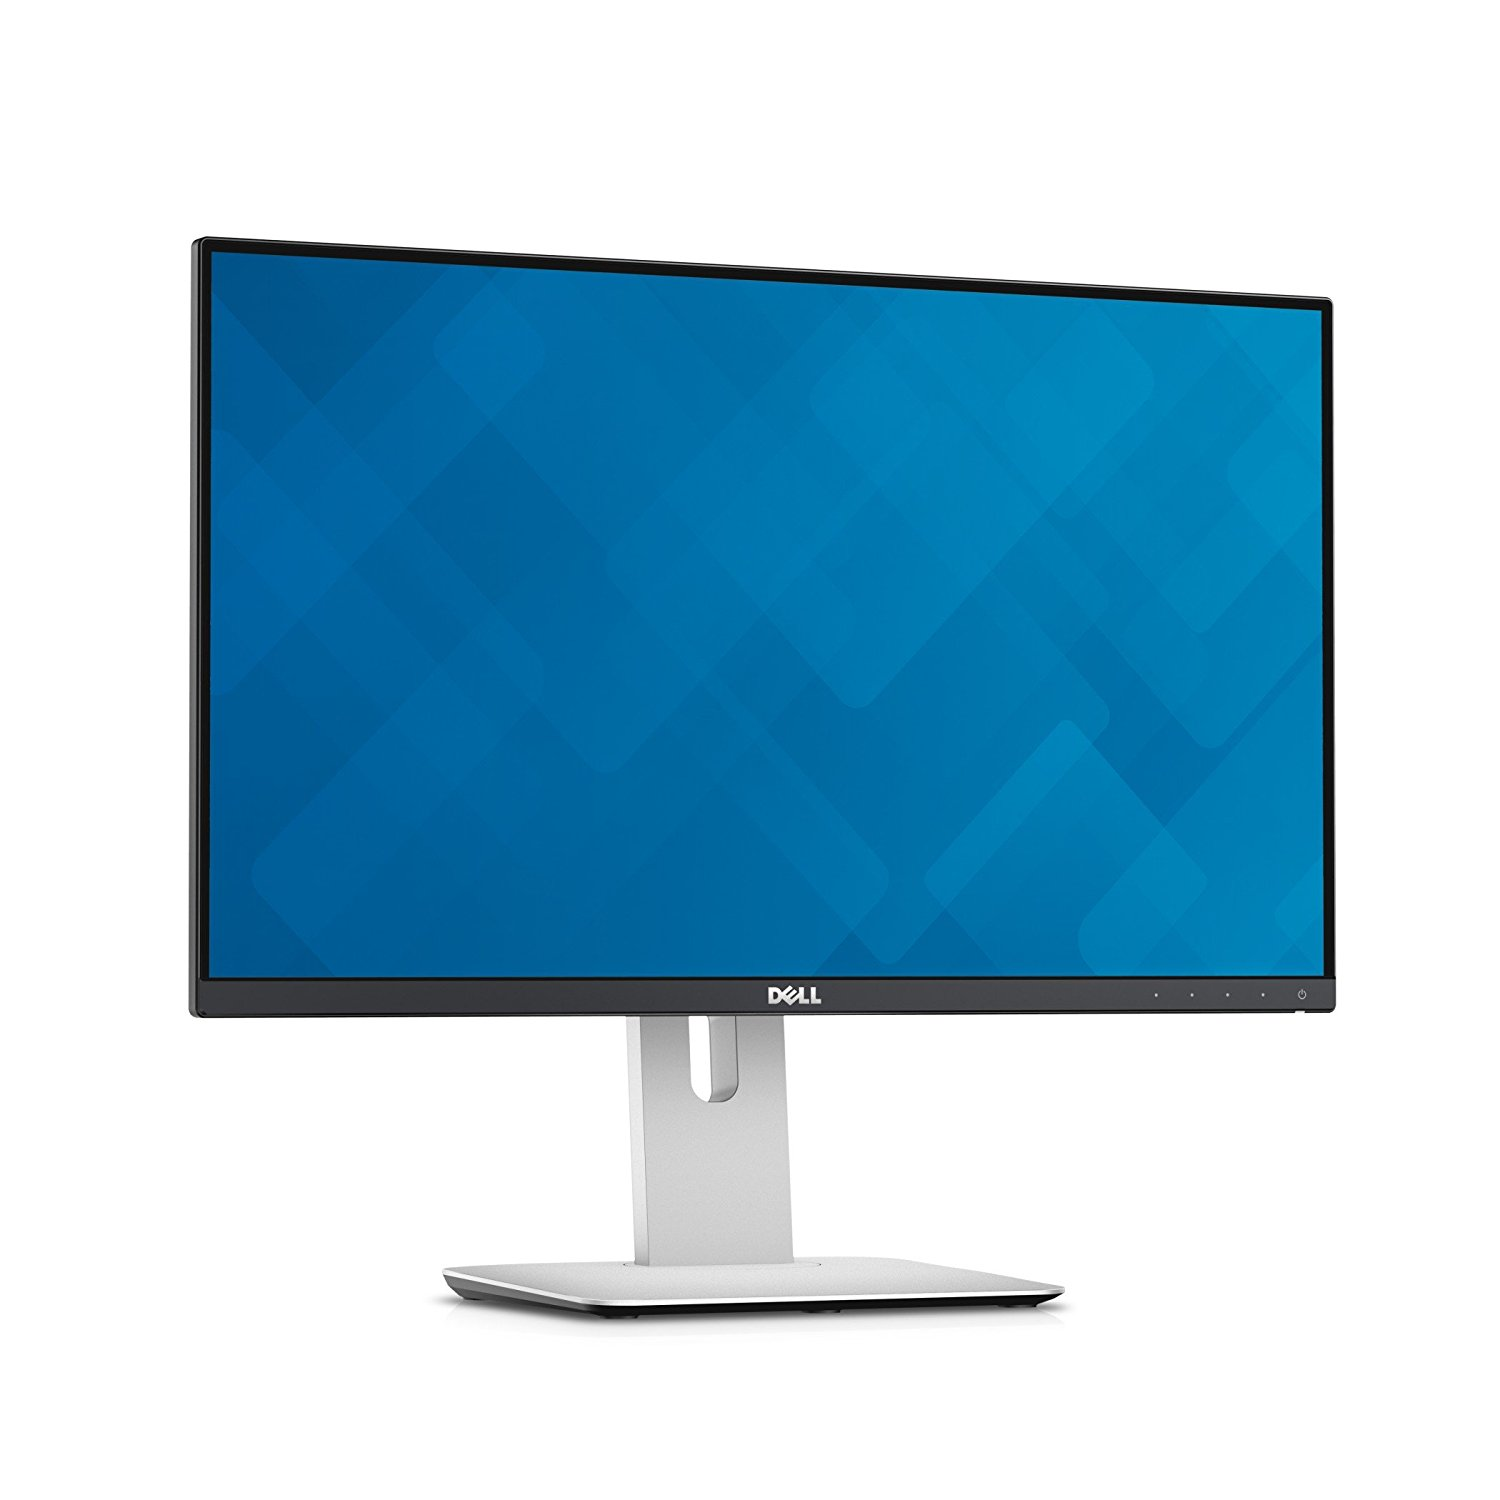 DELL ULTRASHARP U2414H AH-IPS